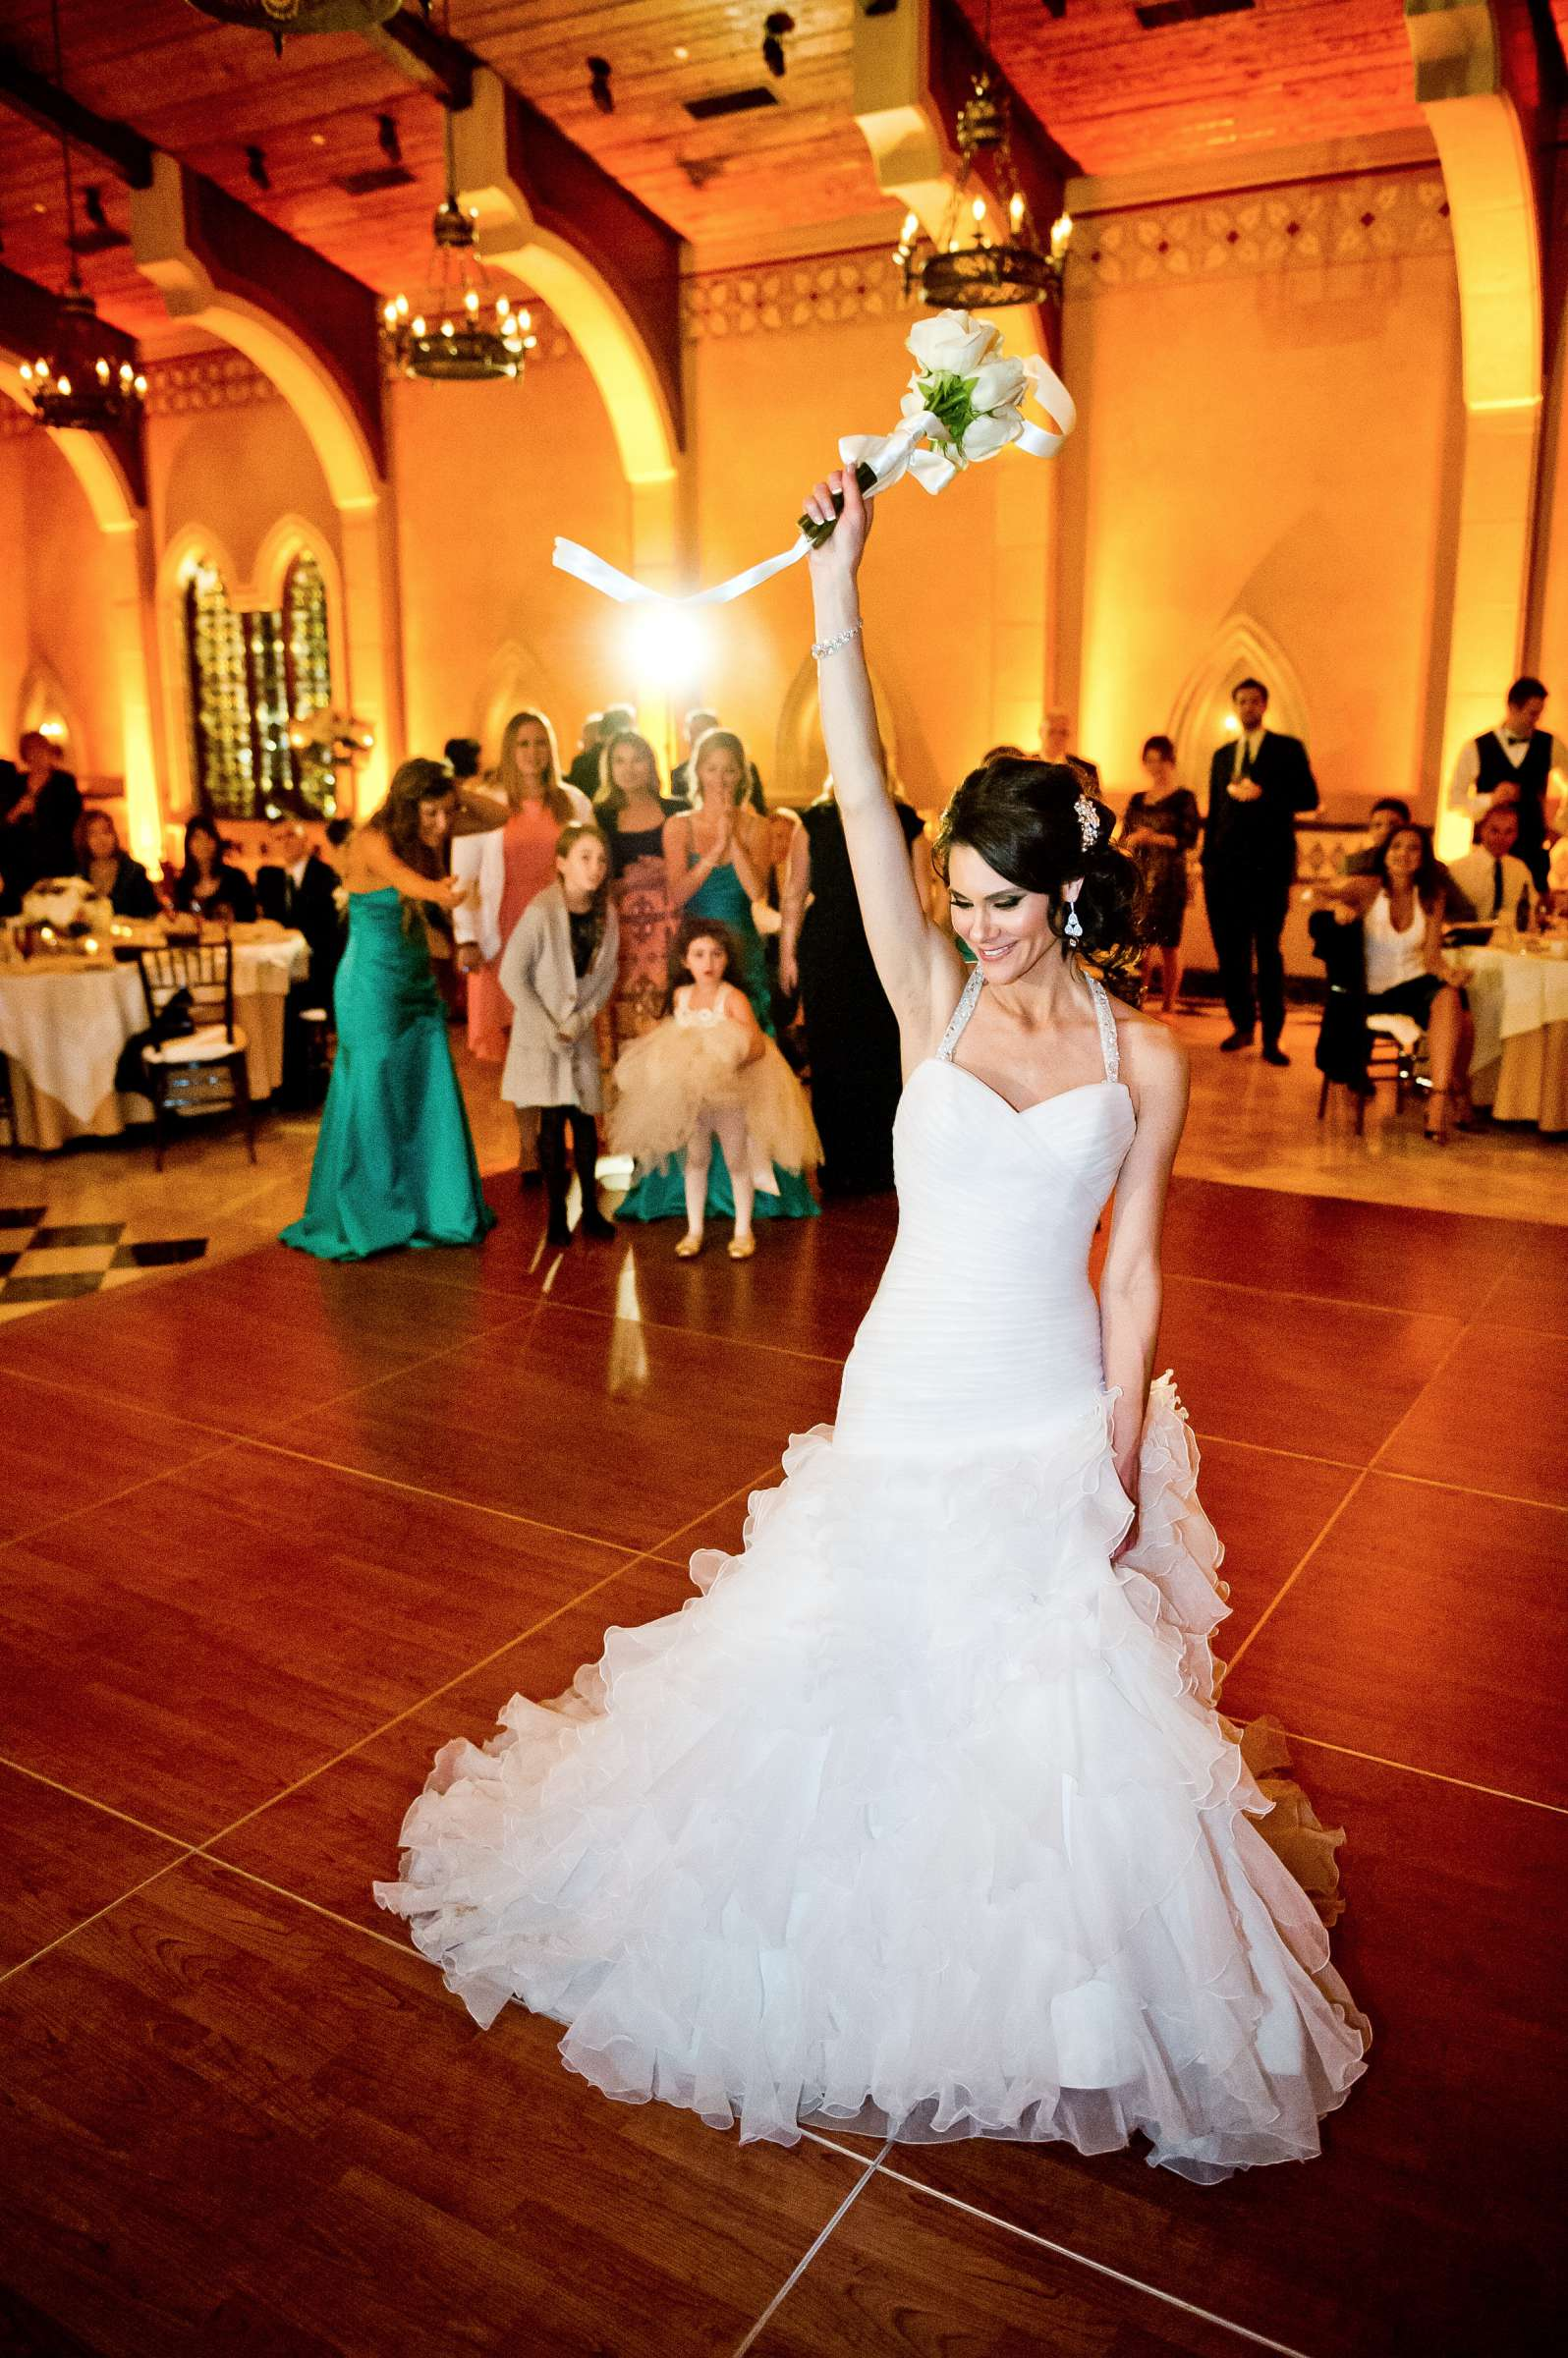 Fairmont Grand Del Mar Wedding, Angela and Tom Wedding Photo #48 by True Photography